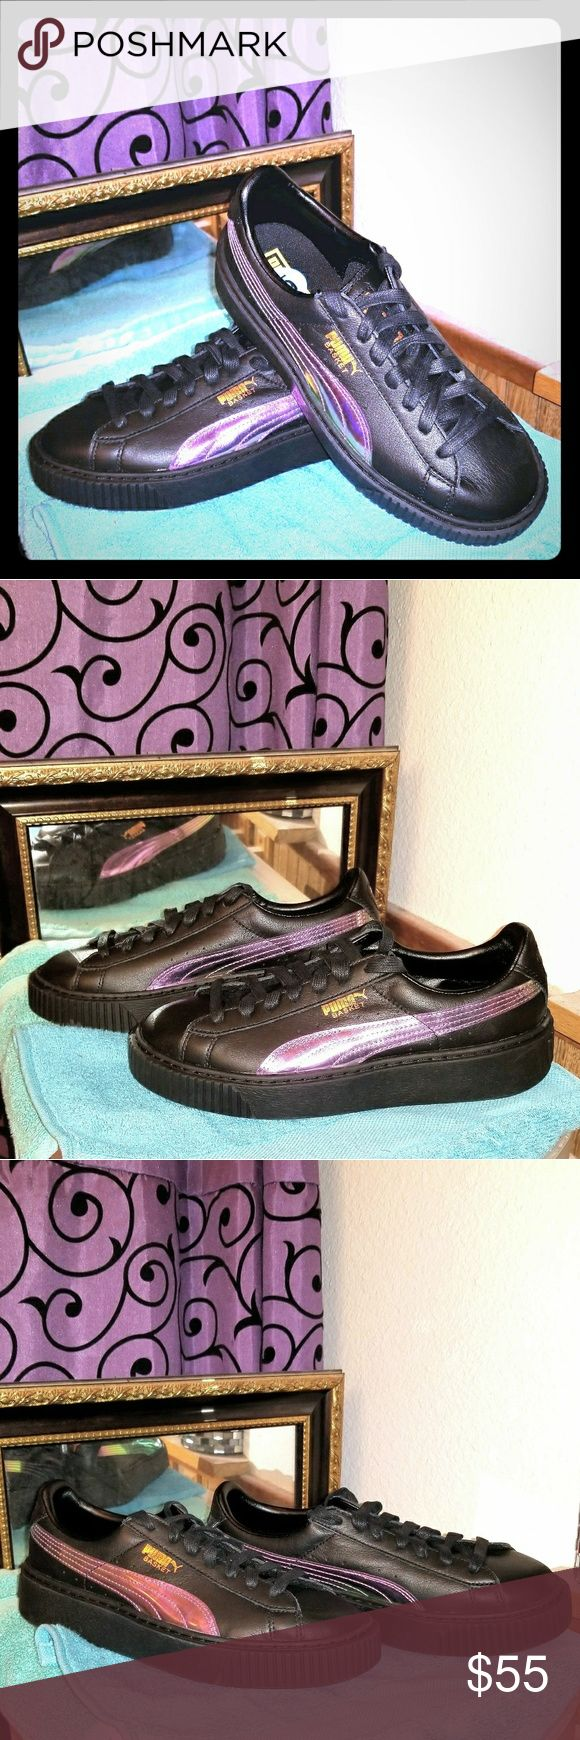 😎NEW BLACK HOLOGRAPHIC PUMAS👣🤹♀️ Black leather with holographic iridescent swoosh  Kids size 6 fits like women's size 7.5-8 Is my guess.  Way too big for me, I'm usually between 6-7 myself  Thicker platform style soles New never worn Great looking, great quality shoes Puma Shoes Sneakers